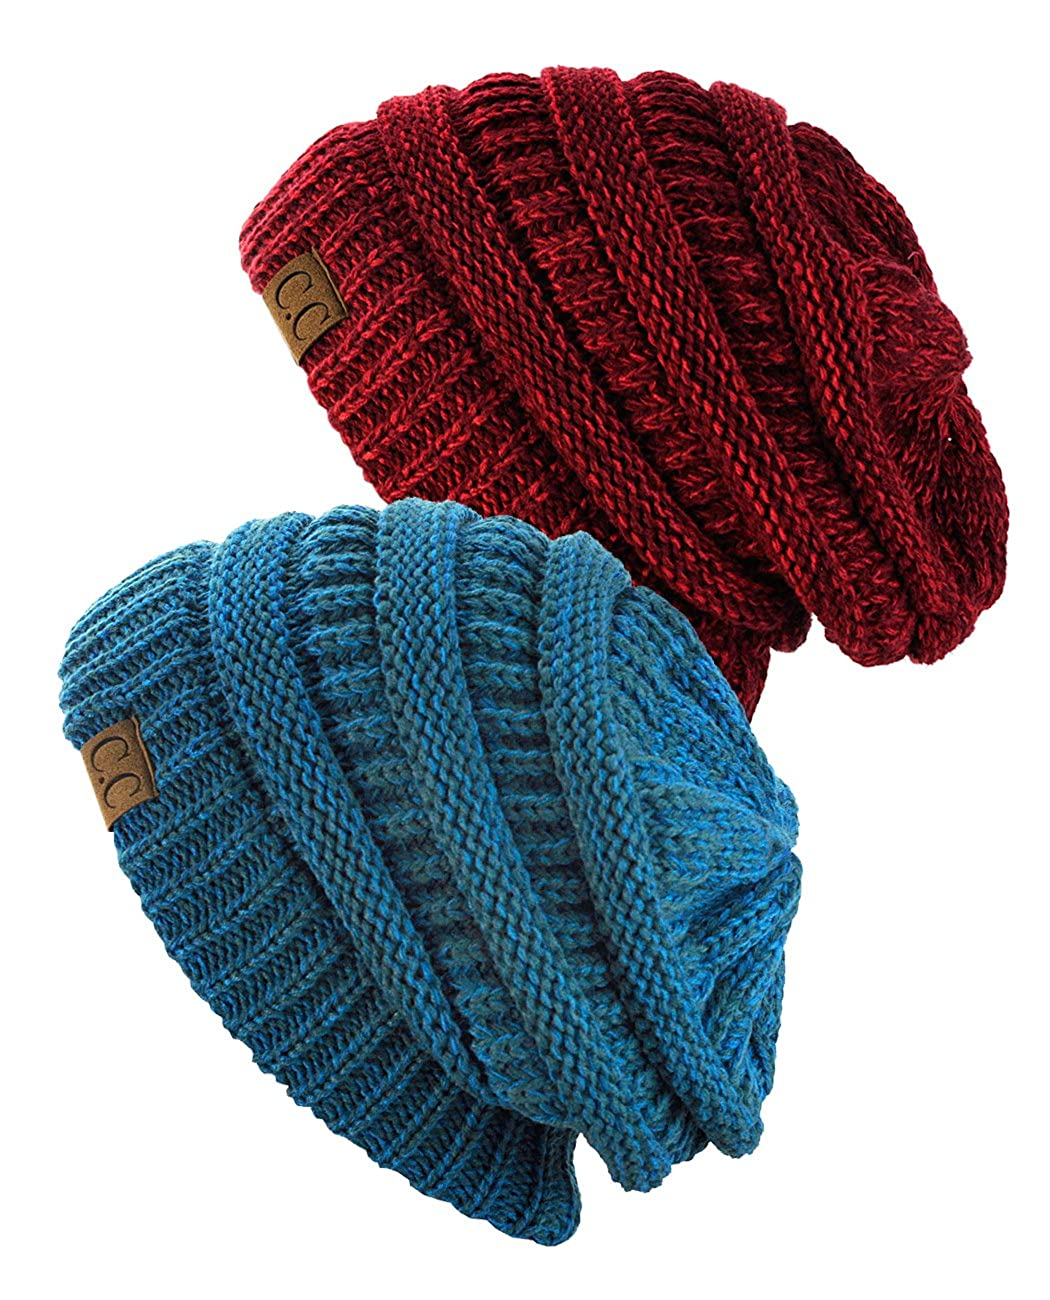 NYFASHION101 Exclusive Unisex Two Tone Warm Cable Knit Thick Slouch Beanie Cap